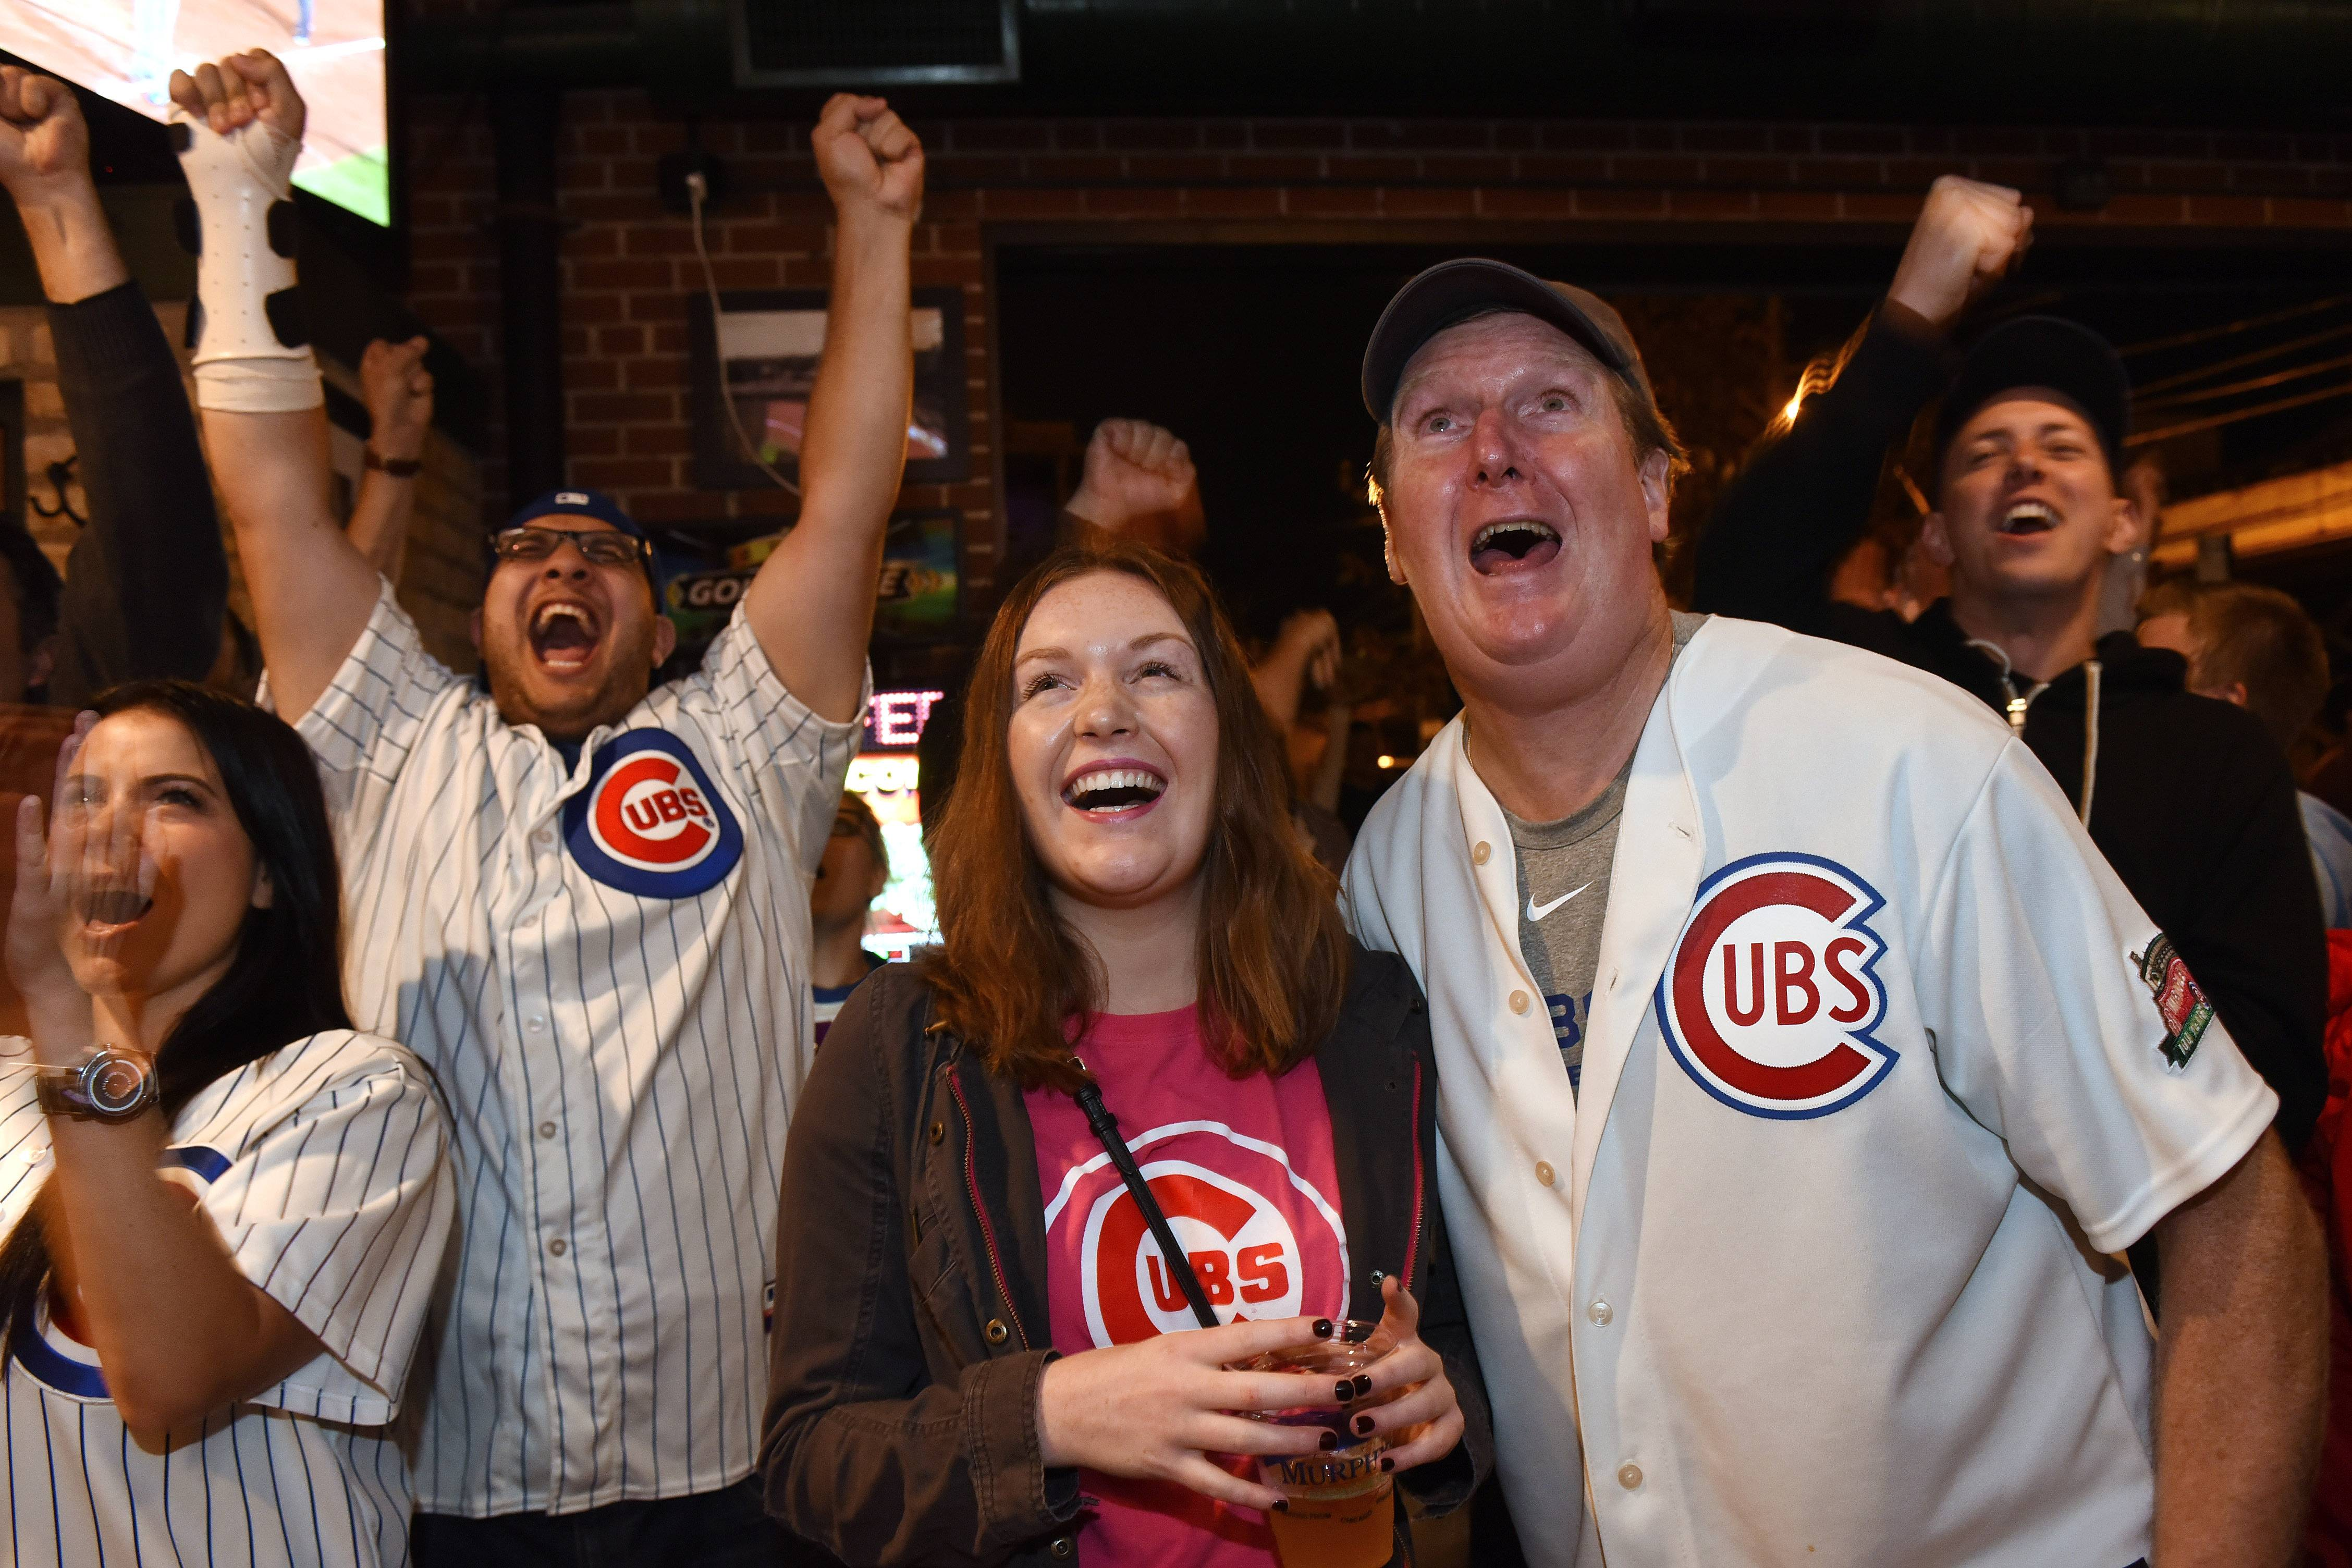 Cubs fans unite: 'We got this. This is our year'